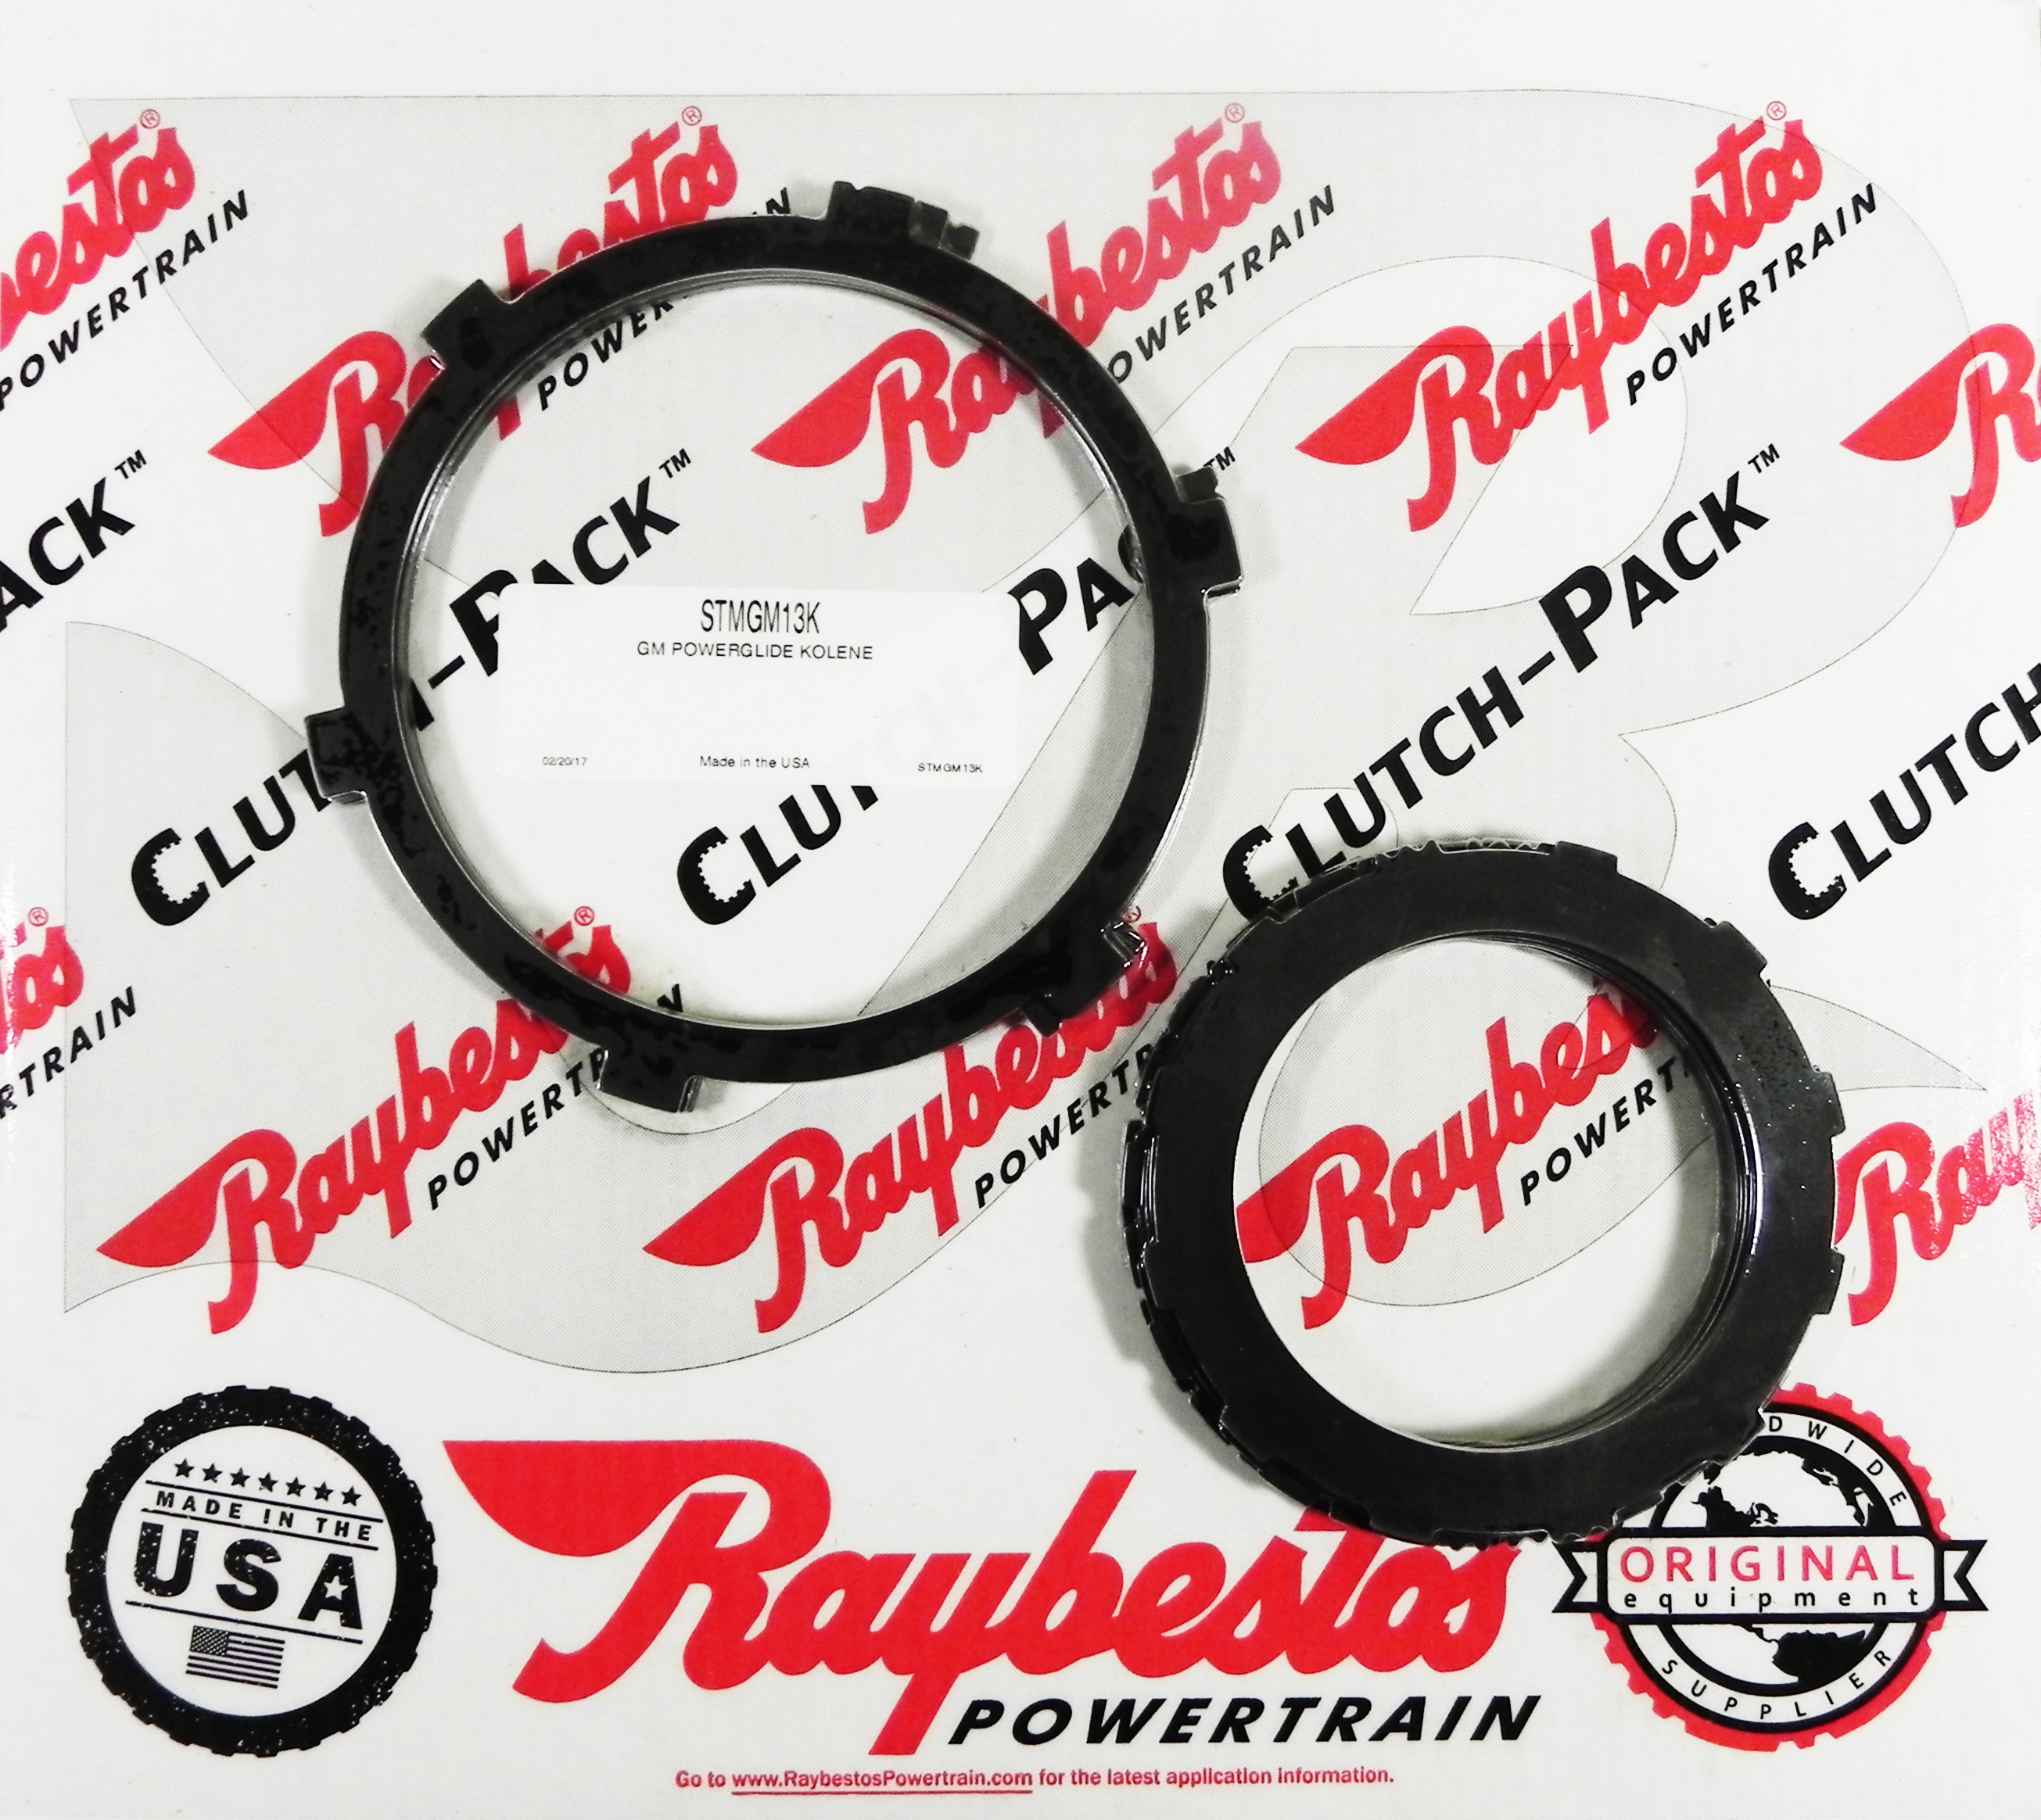 POWERGLIDE Kolene Steel Clutch Pack